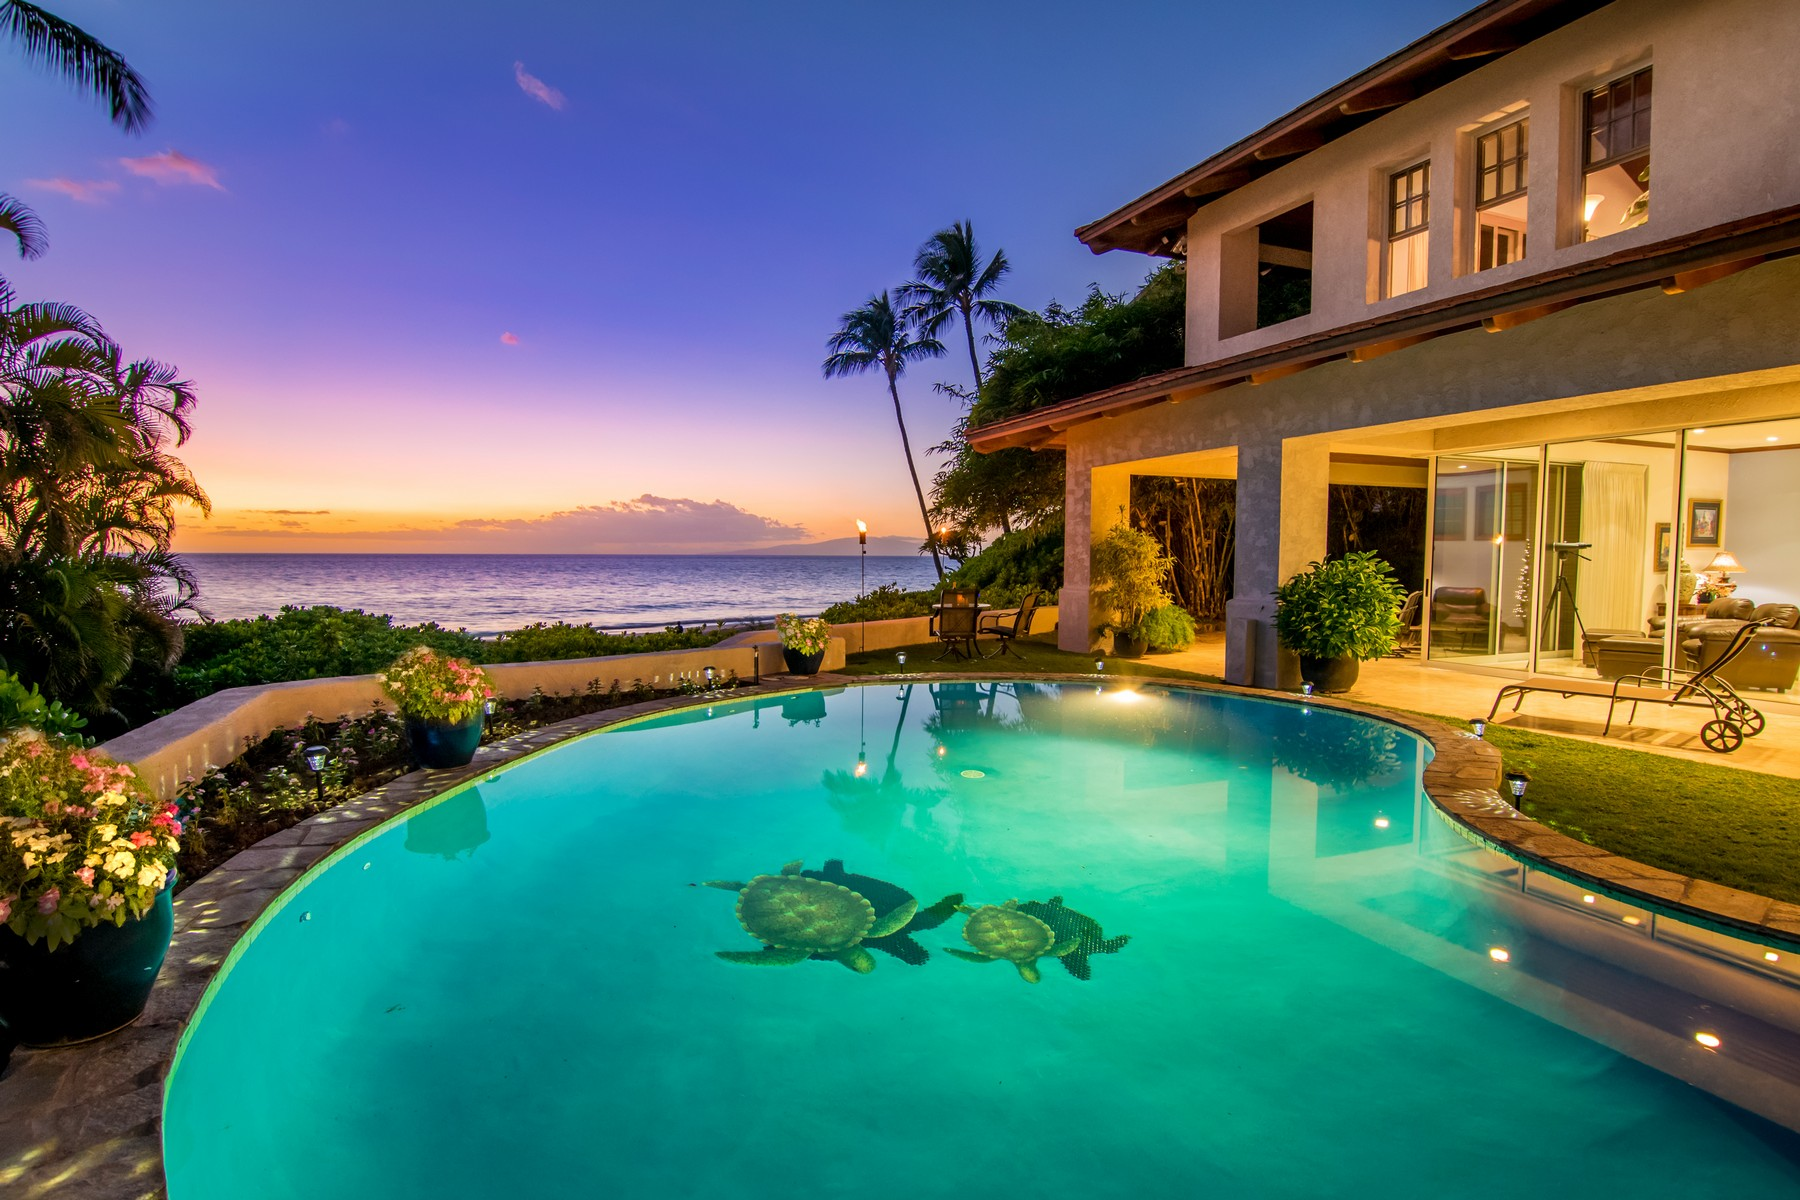 独户住宅 为 销售 在 Elegant Oceanfront Estate On Maui's Finest Sandy Beach 3002 South Kihei Road 基黑, 夏威夷, 96753 美国